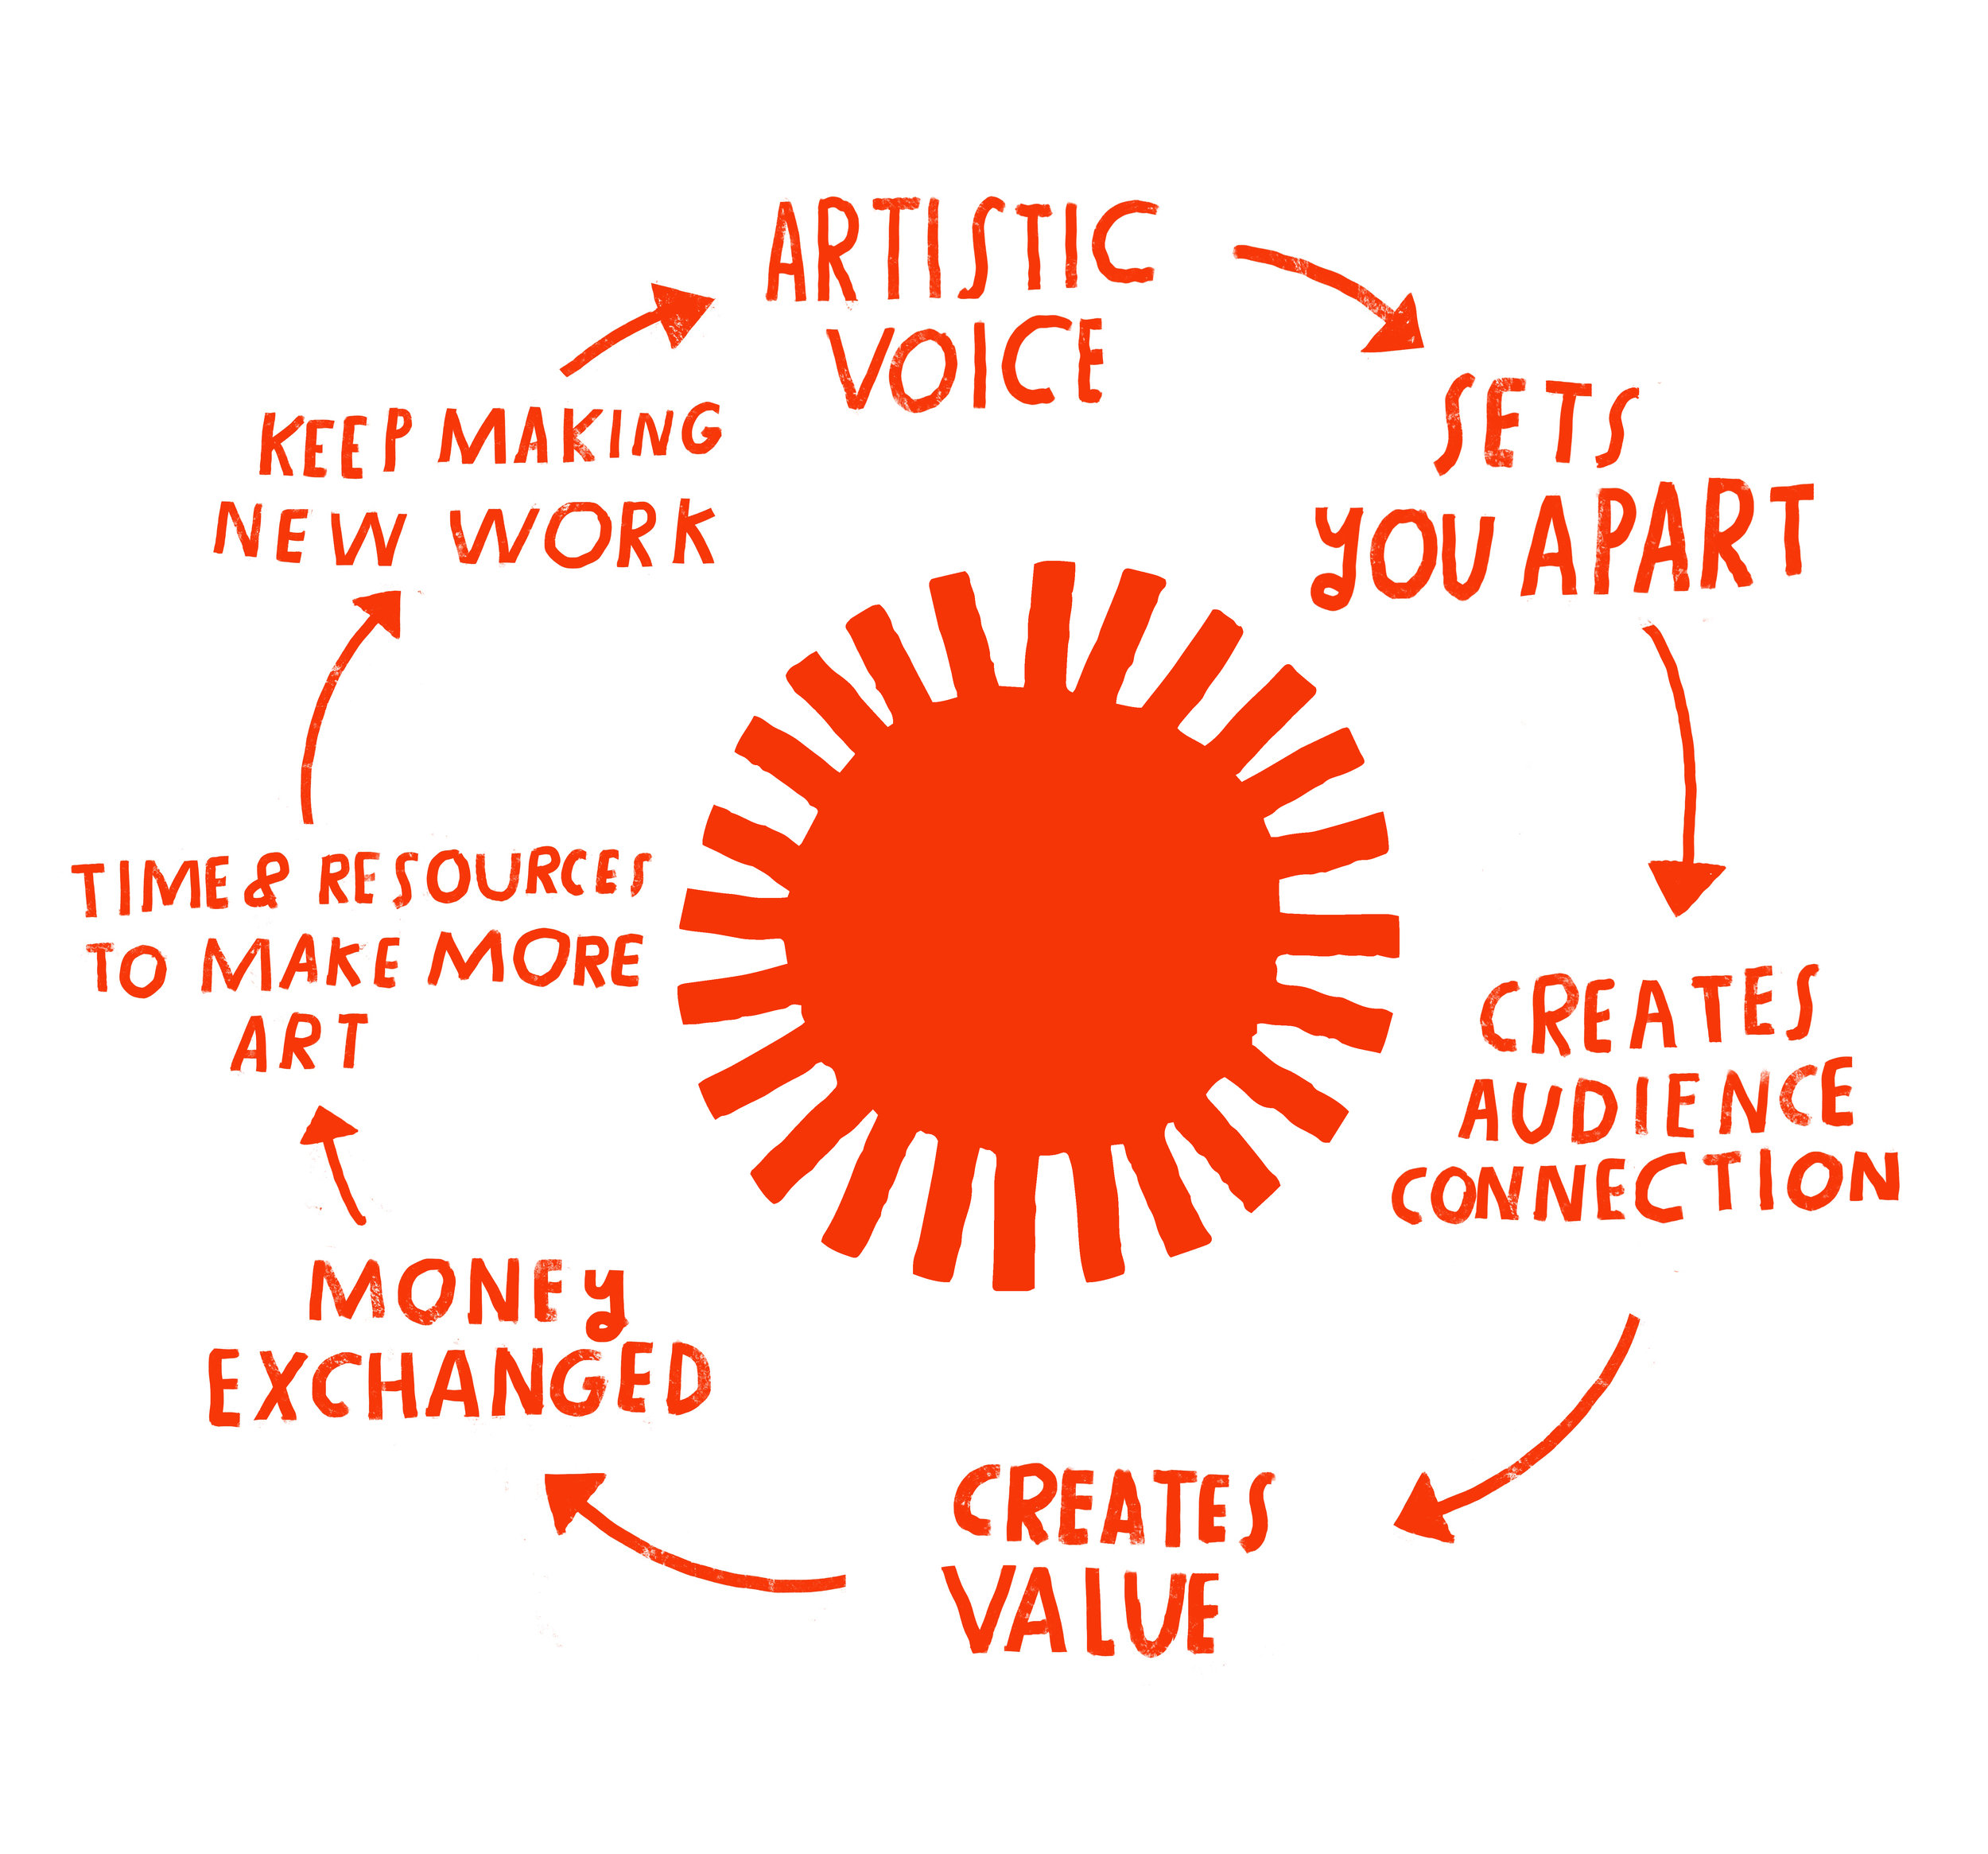 Find Your Artistic Voice_Lisa Congdon_Essential Element for Professional Sustainability.jpg